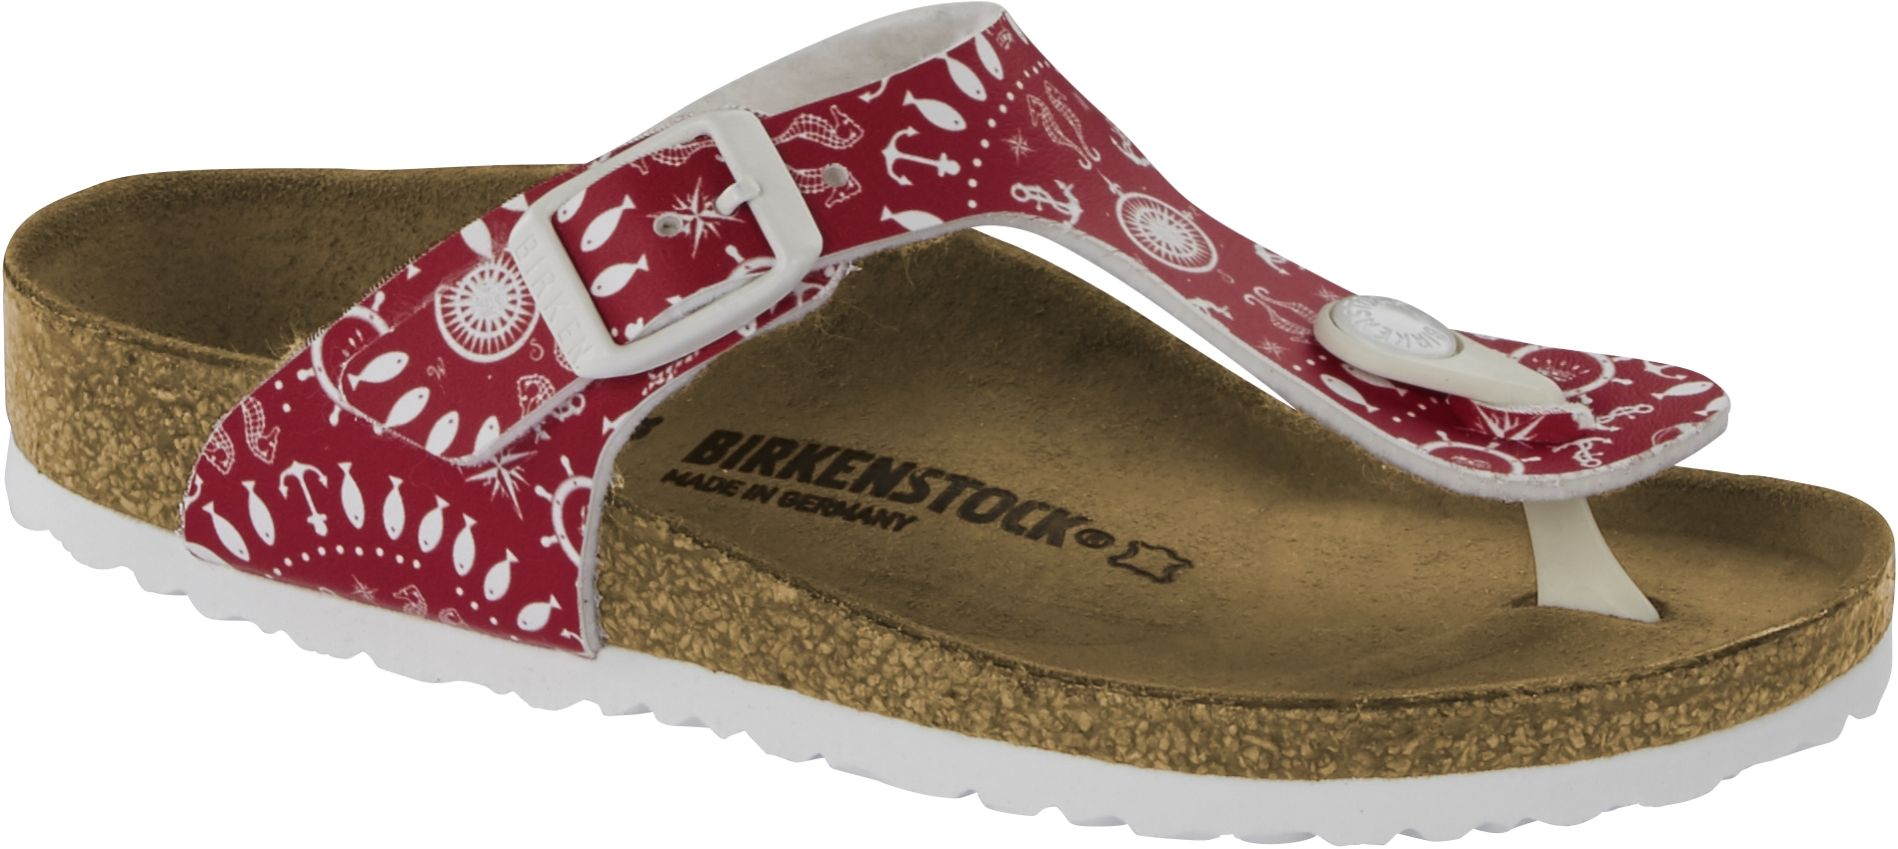 Birkenstock Gizeh Kids Nautical Print Red